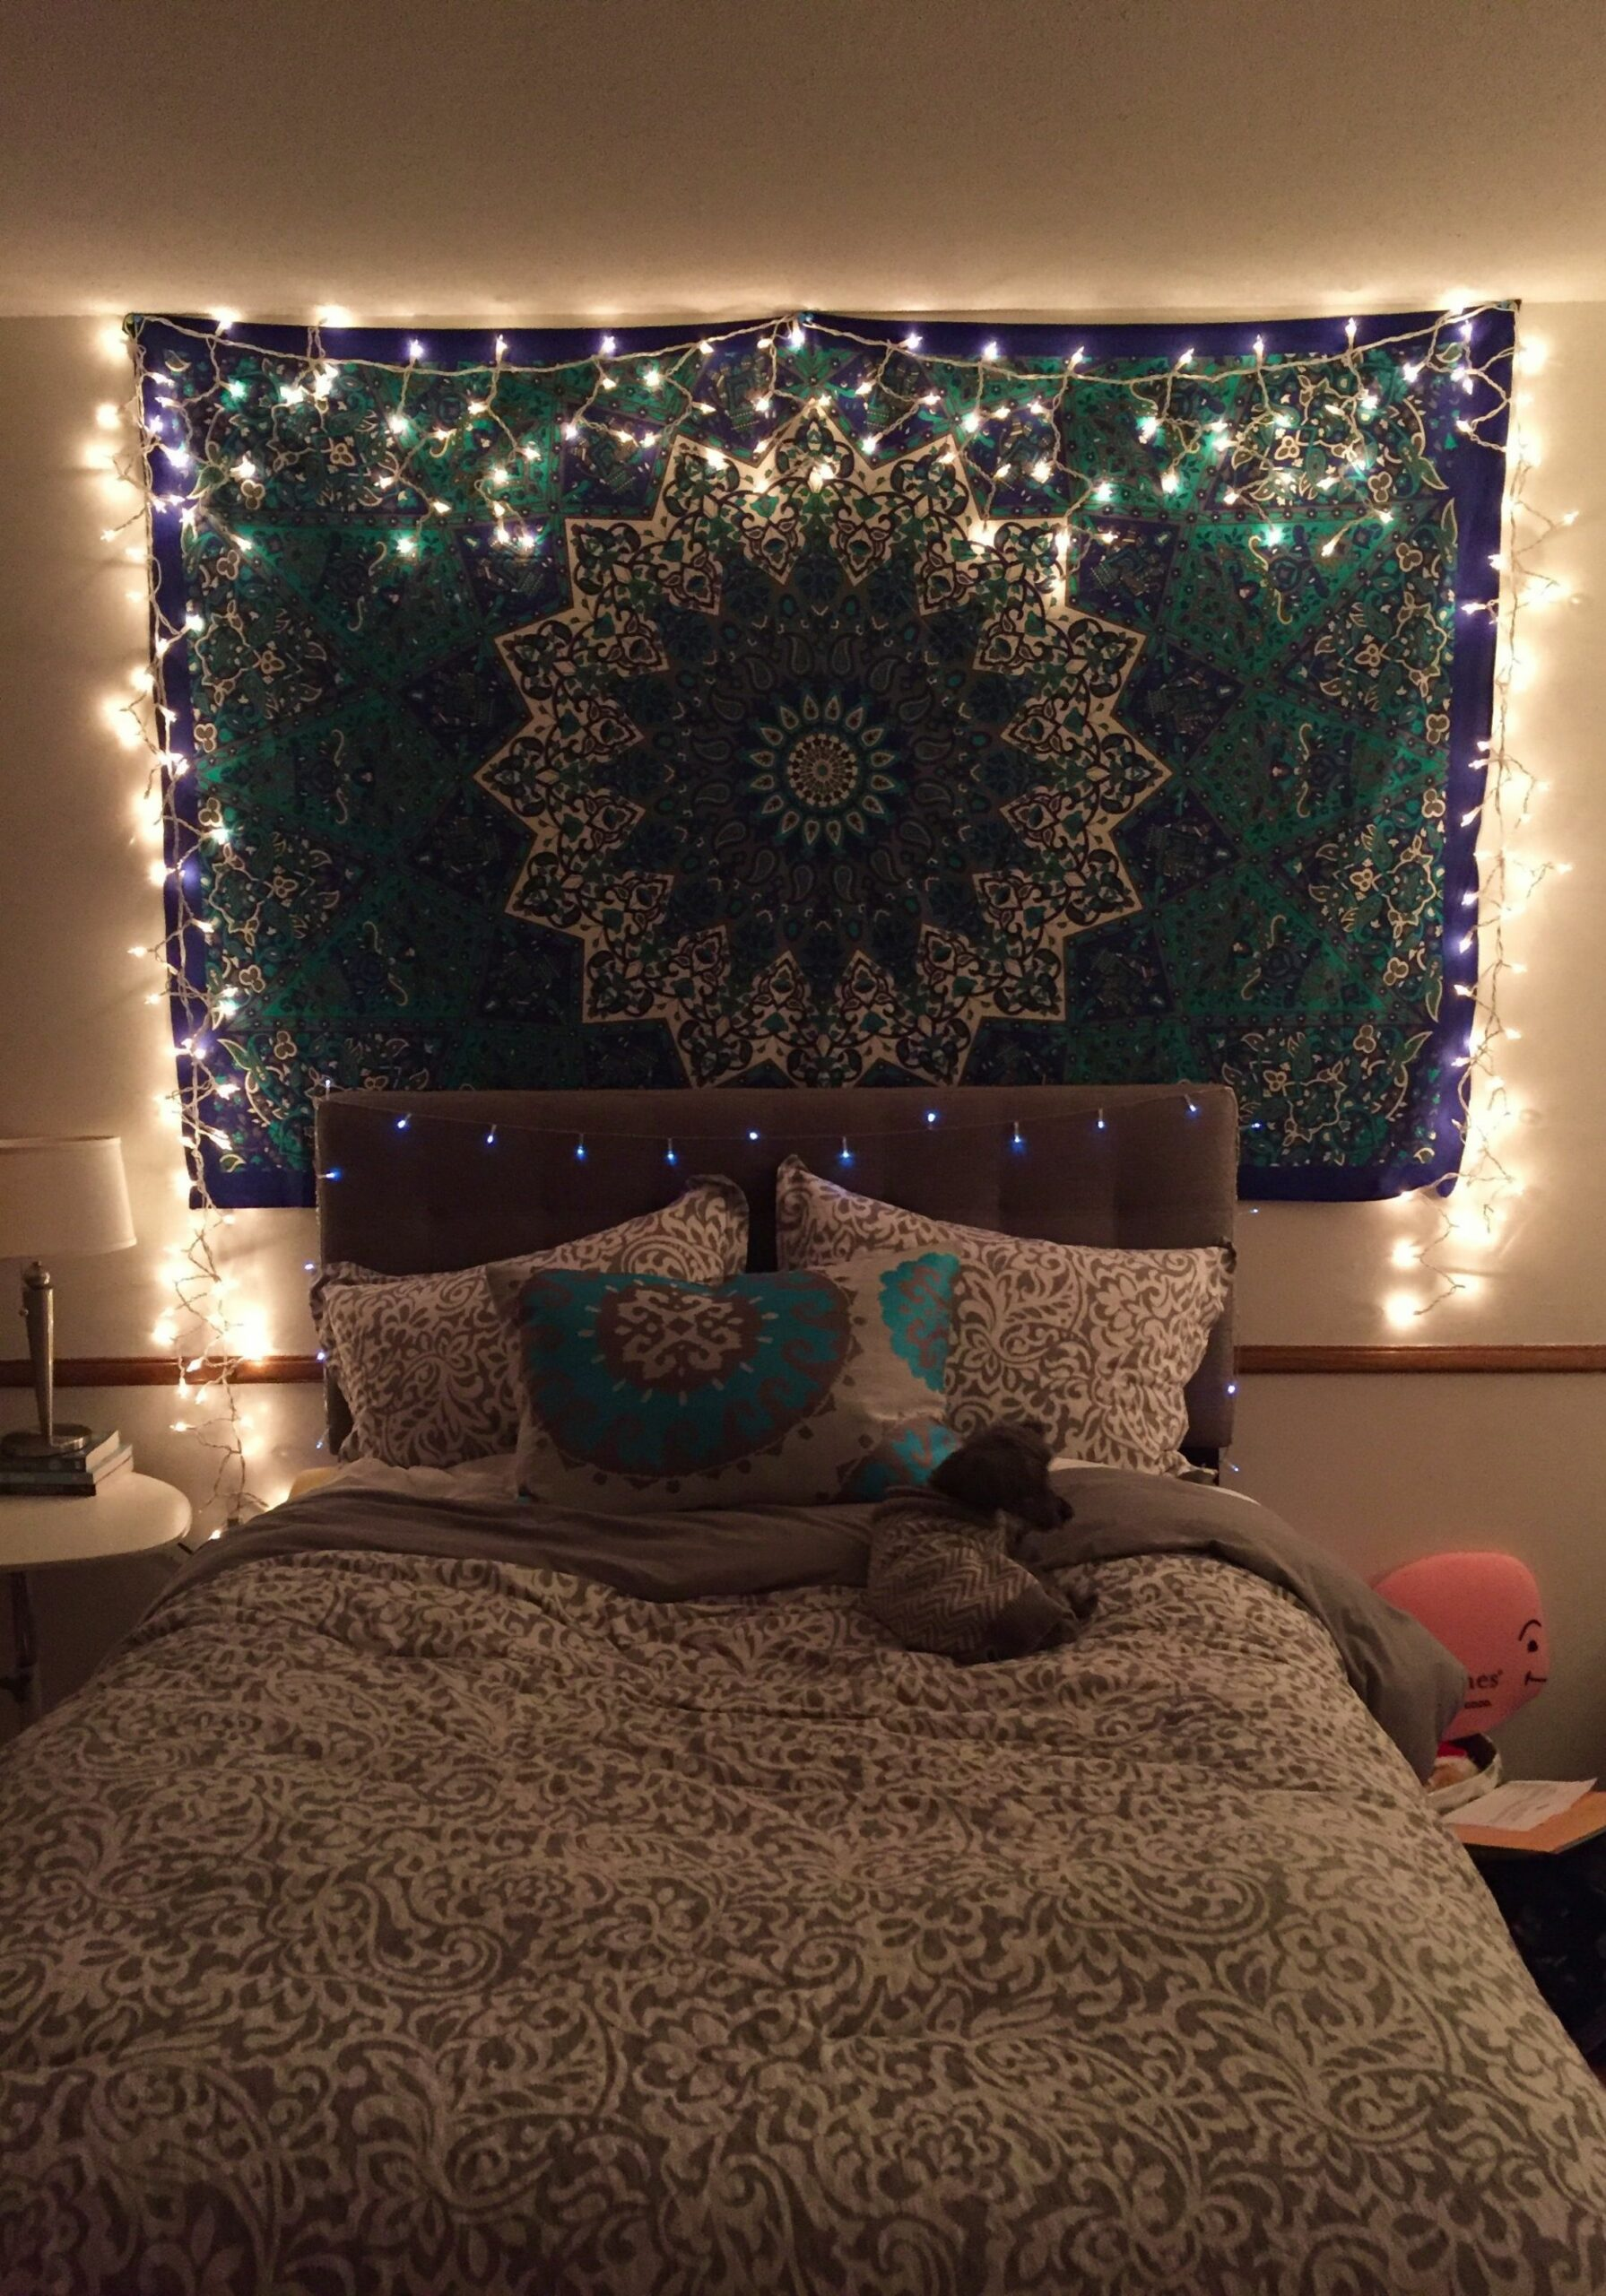 tapestry with icicle lights | Turquoise bedroom decor, Turquoise ...